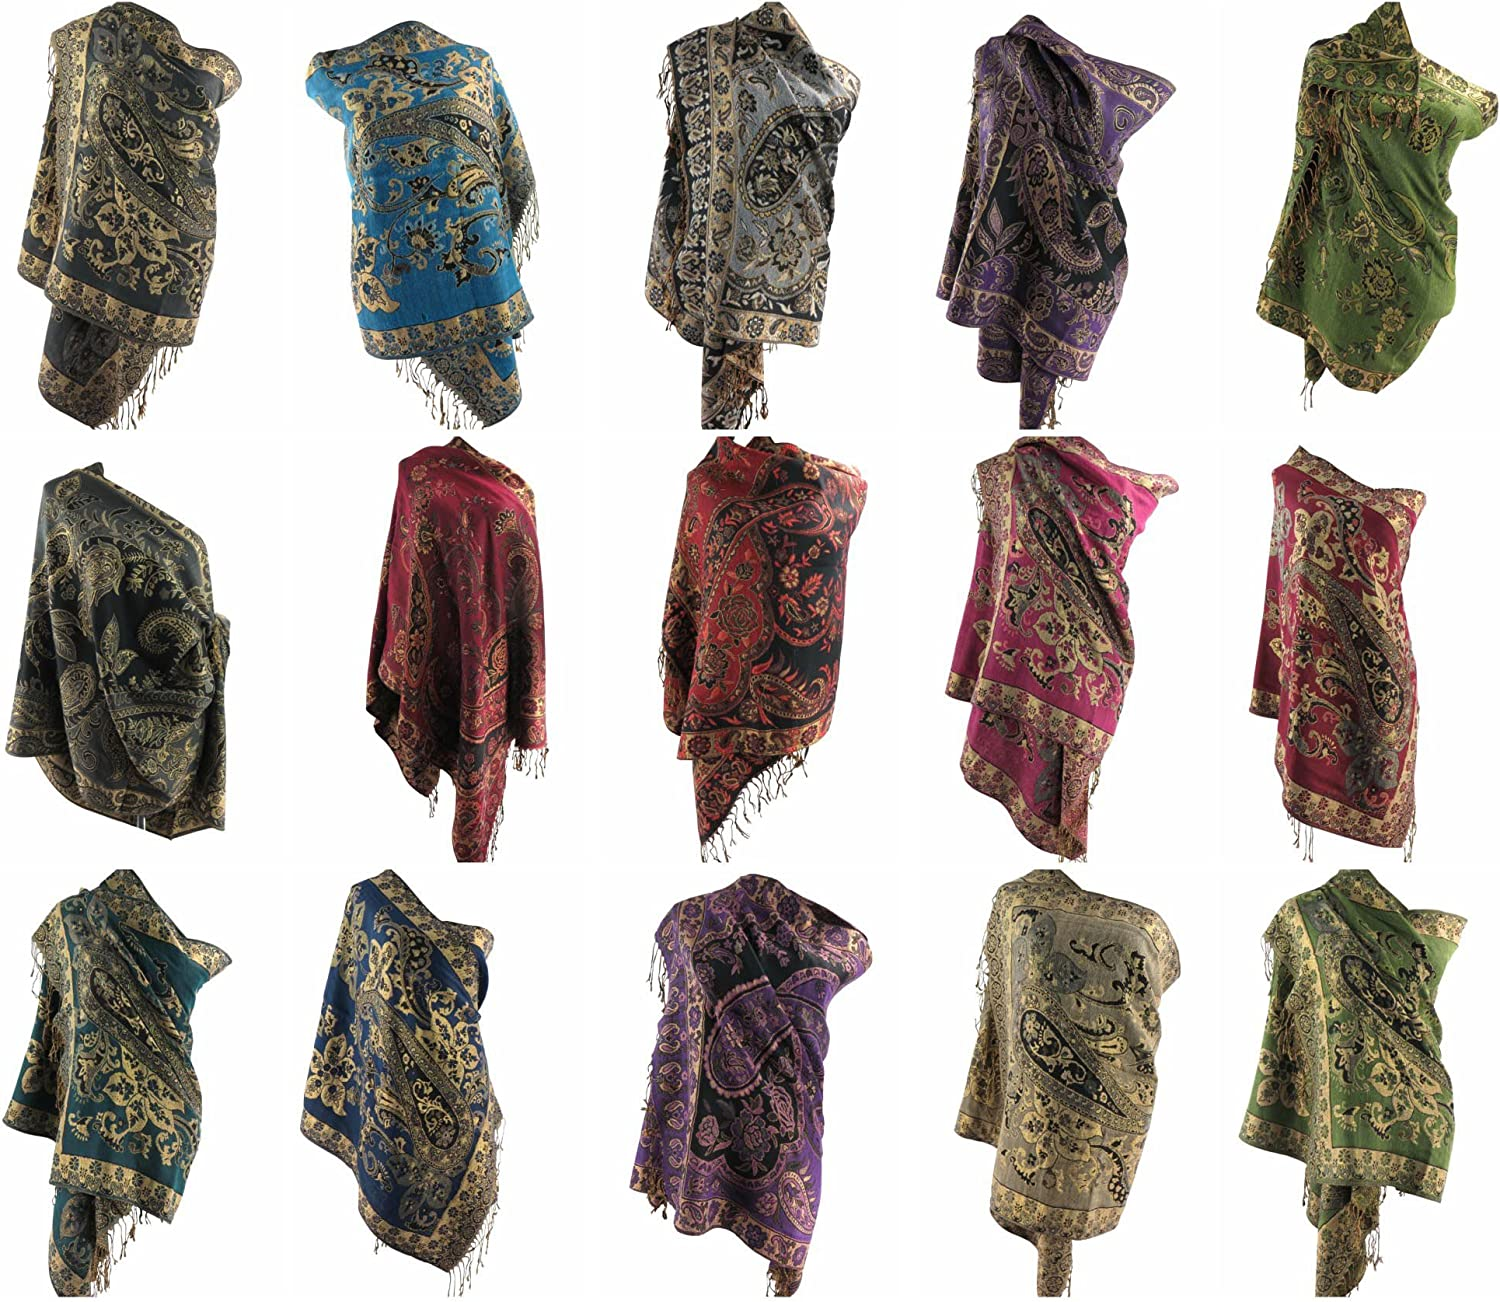 12 scarves floral paisley gold thread embeded pashmina shawl wrap stole Evening shawl Scarf